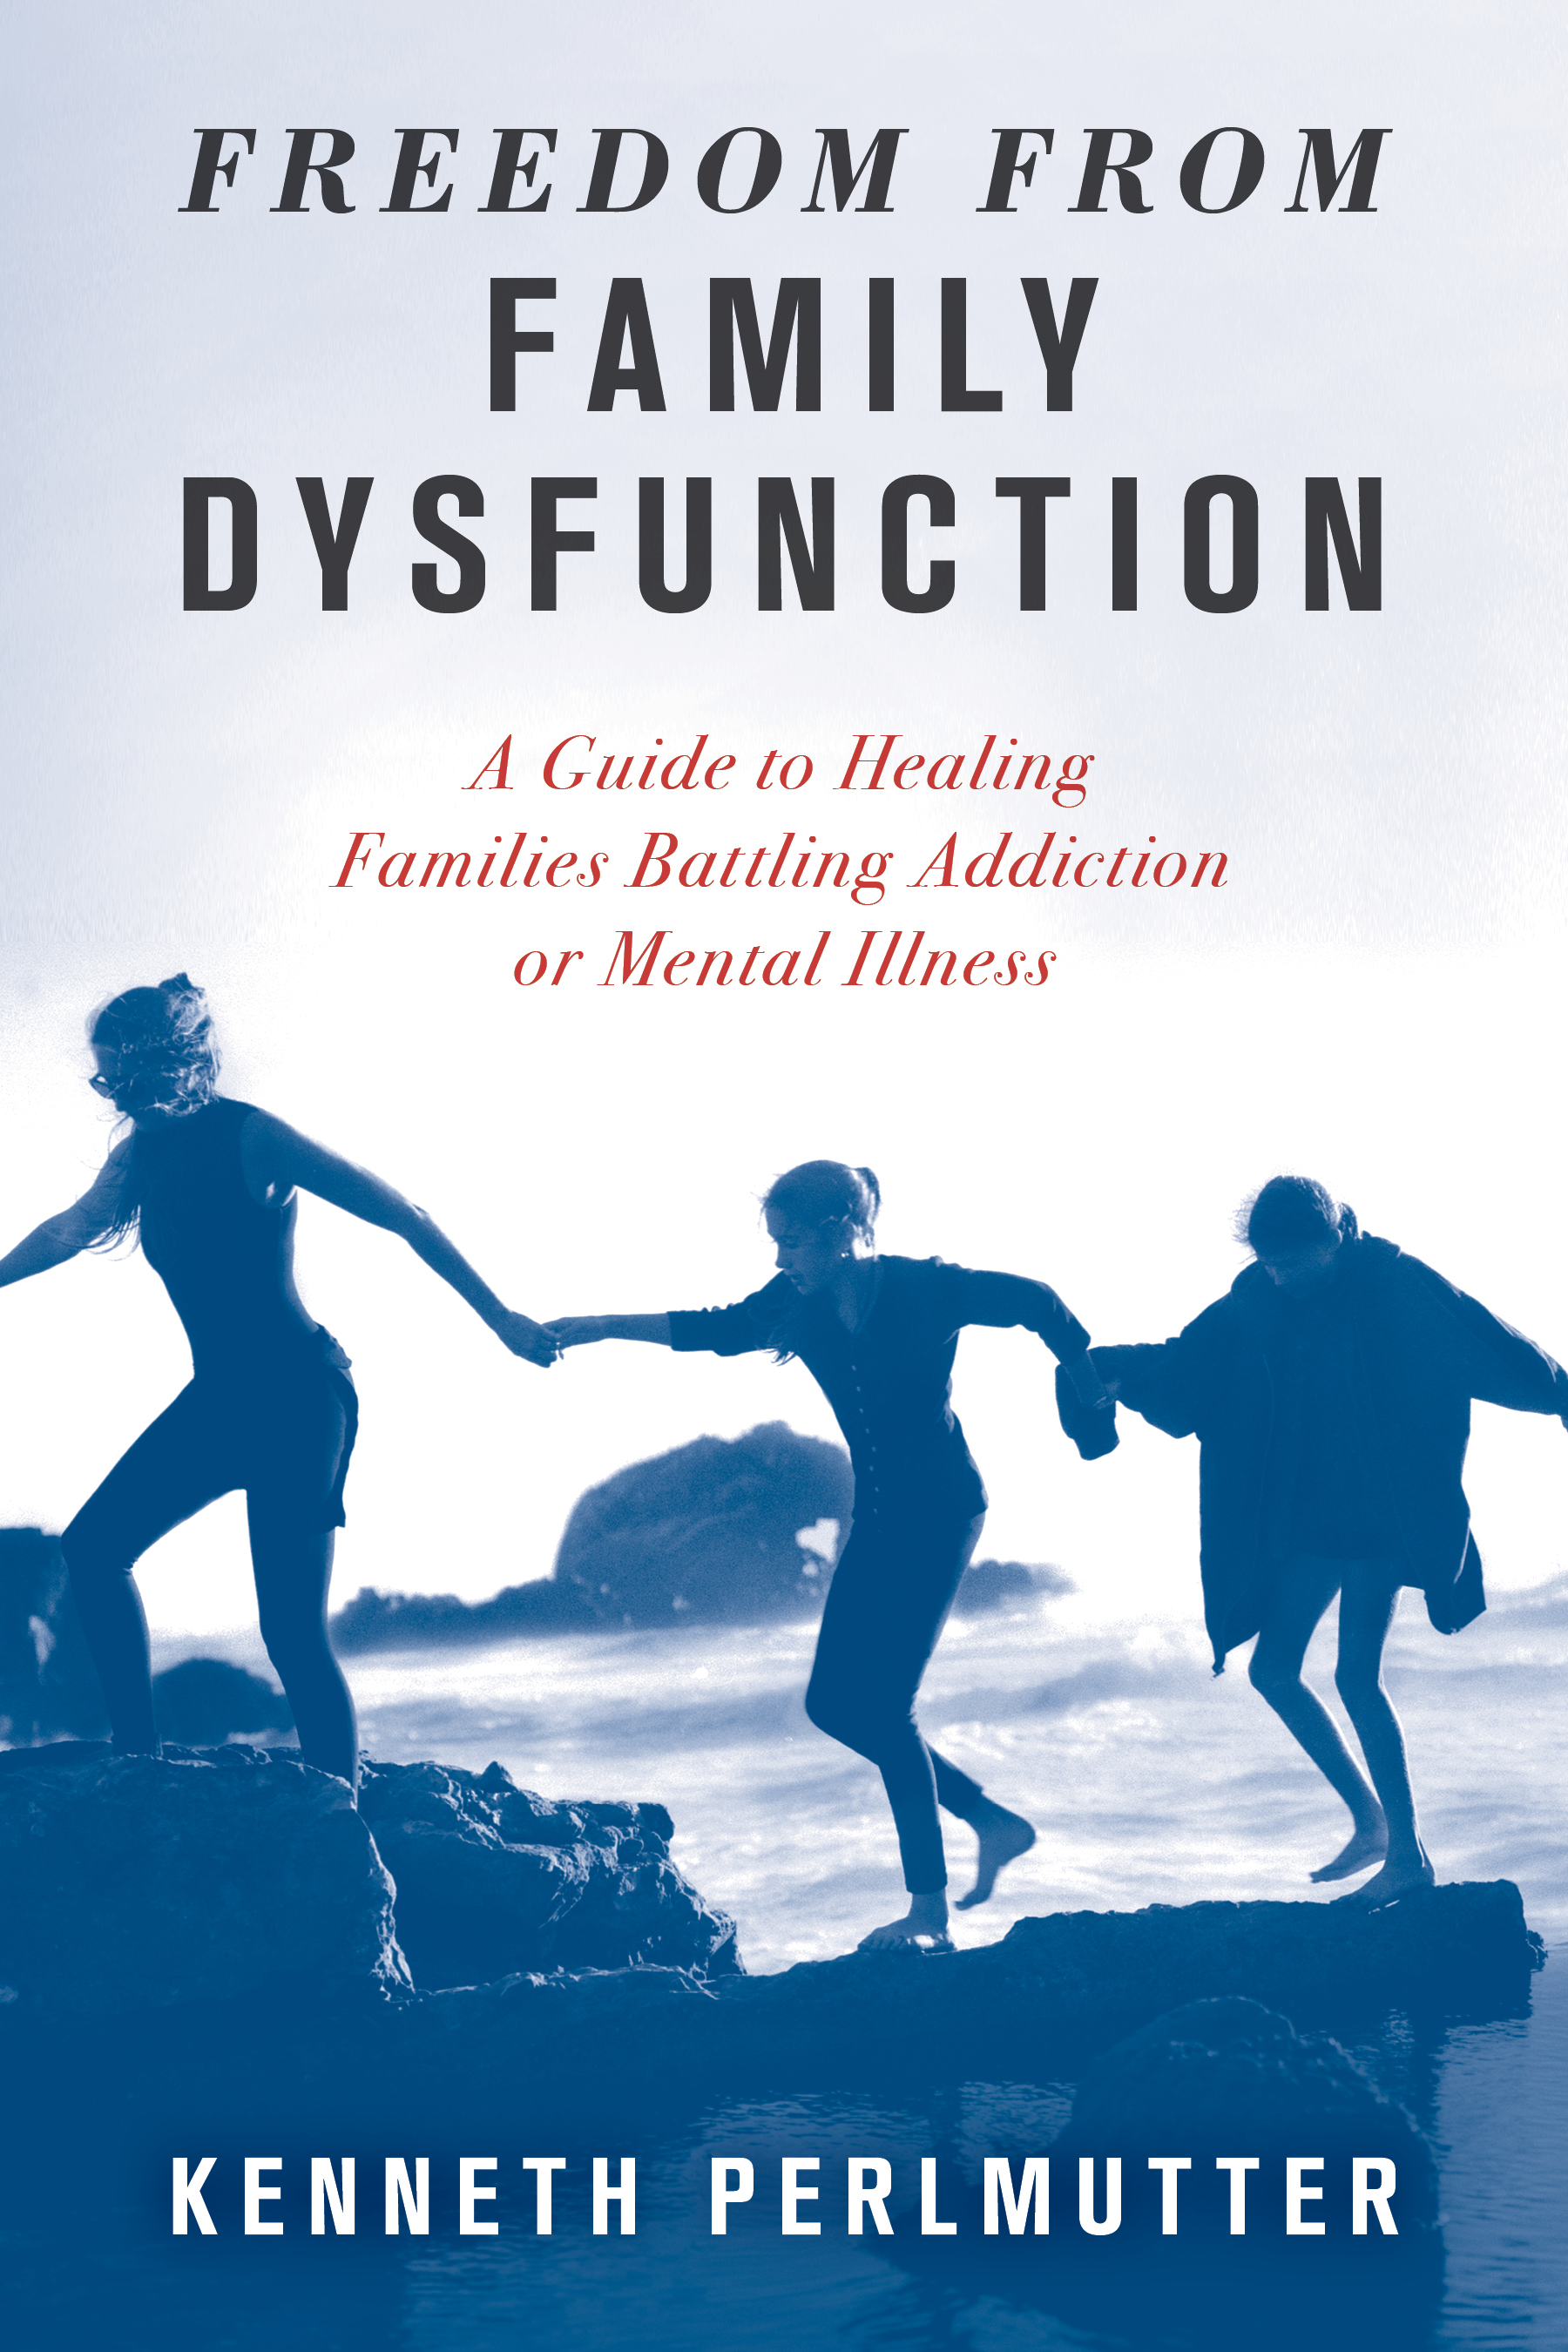 Freedom from Family Dysfunction: A Guide to Healing Families Battling Addiction or Mental Illness